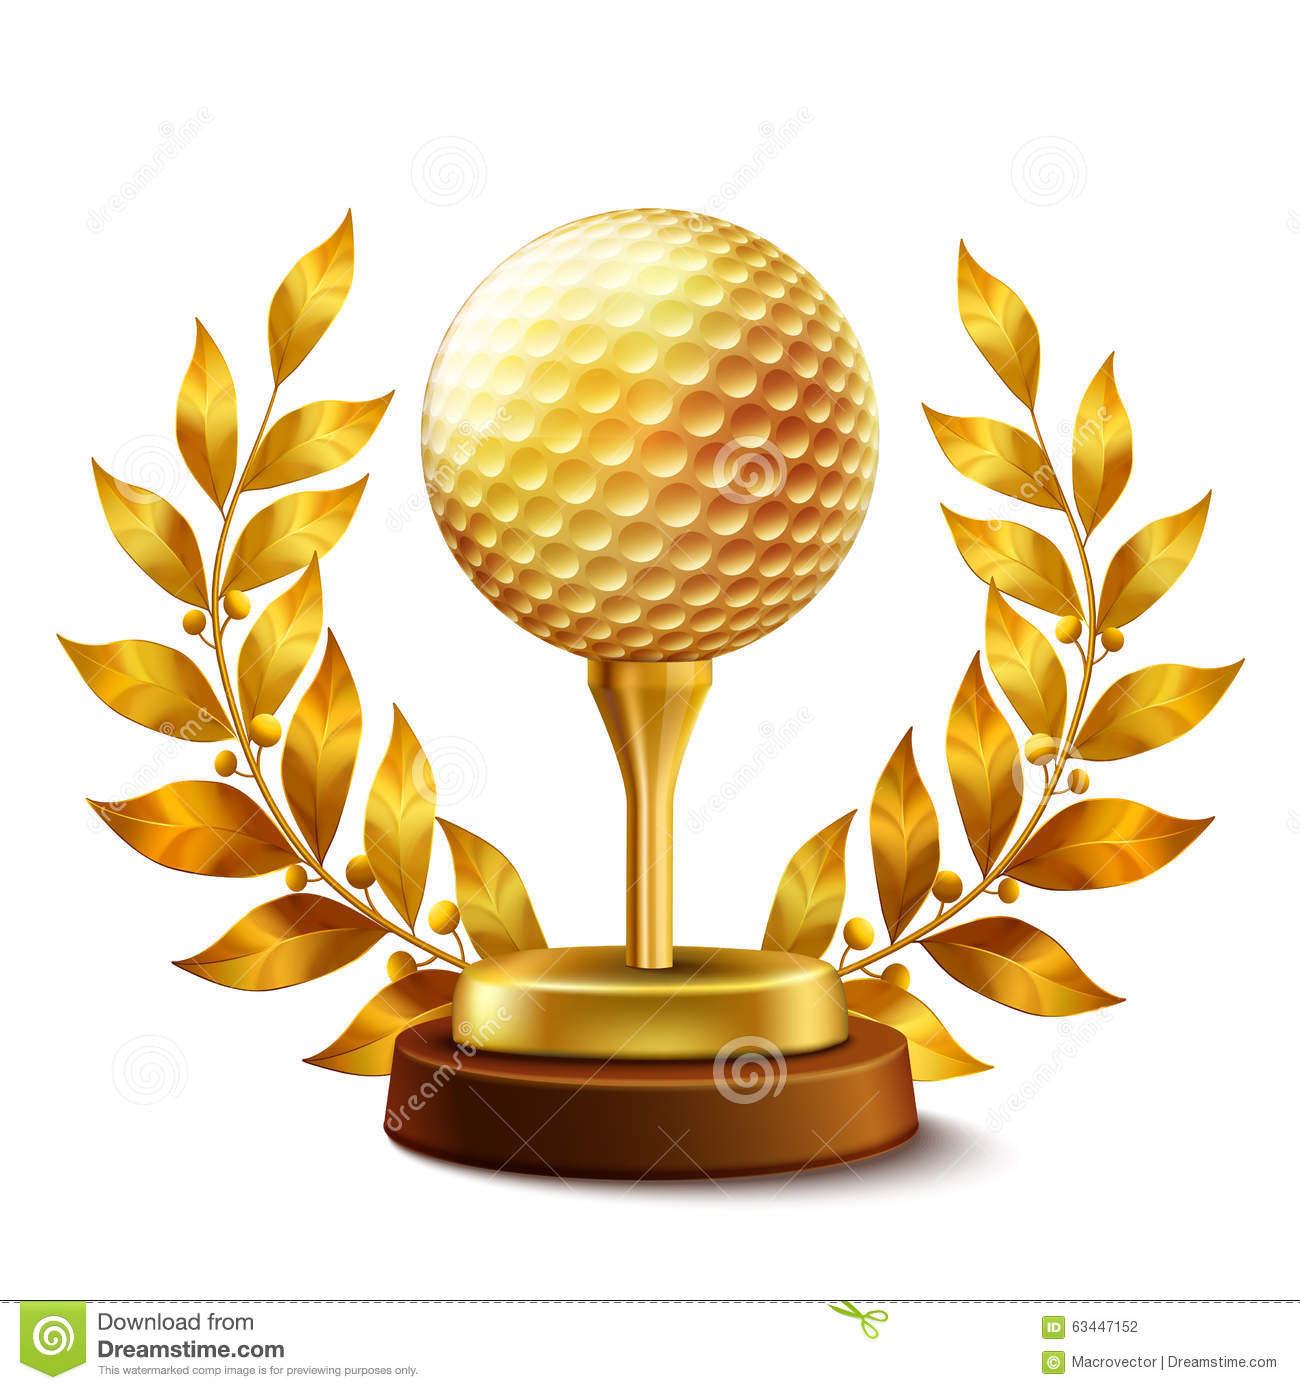 Golden golf award stock vector. Illustration of design.